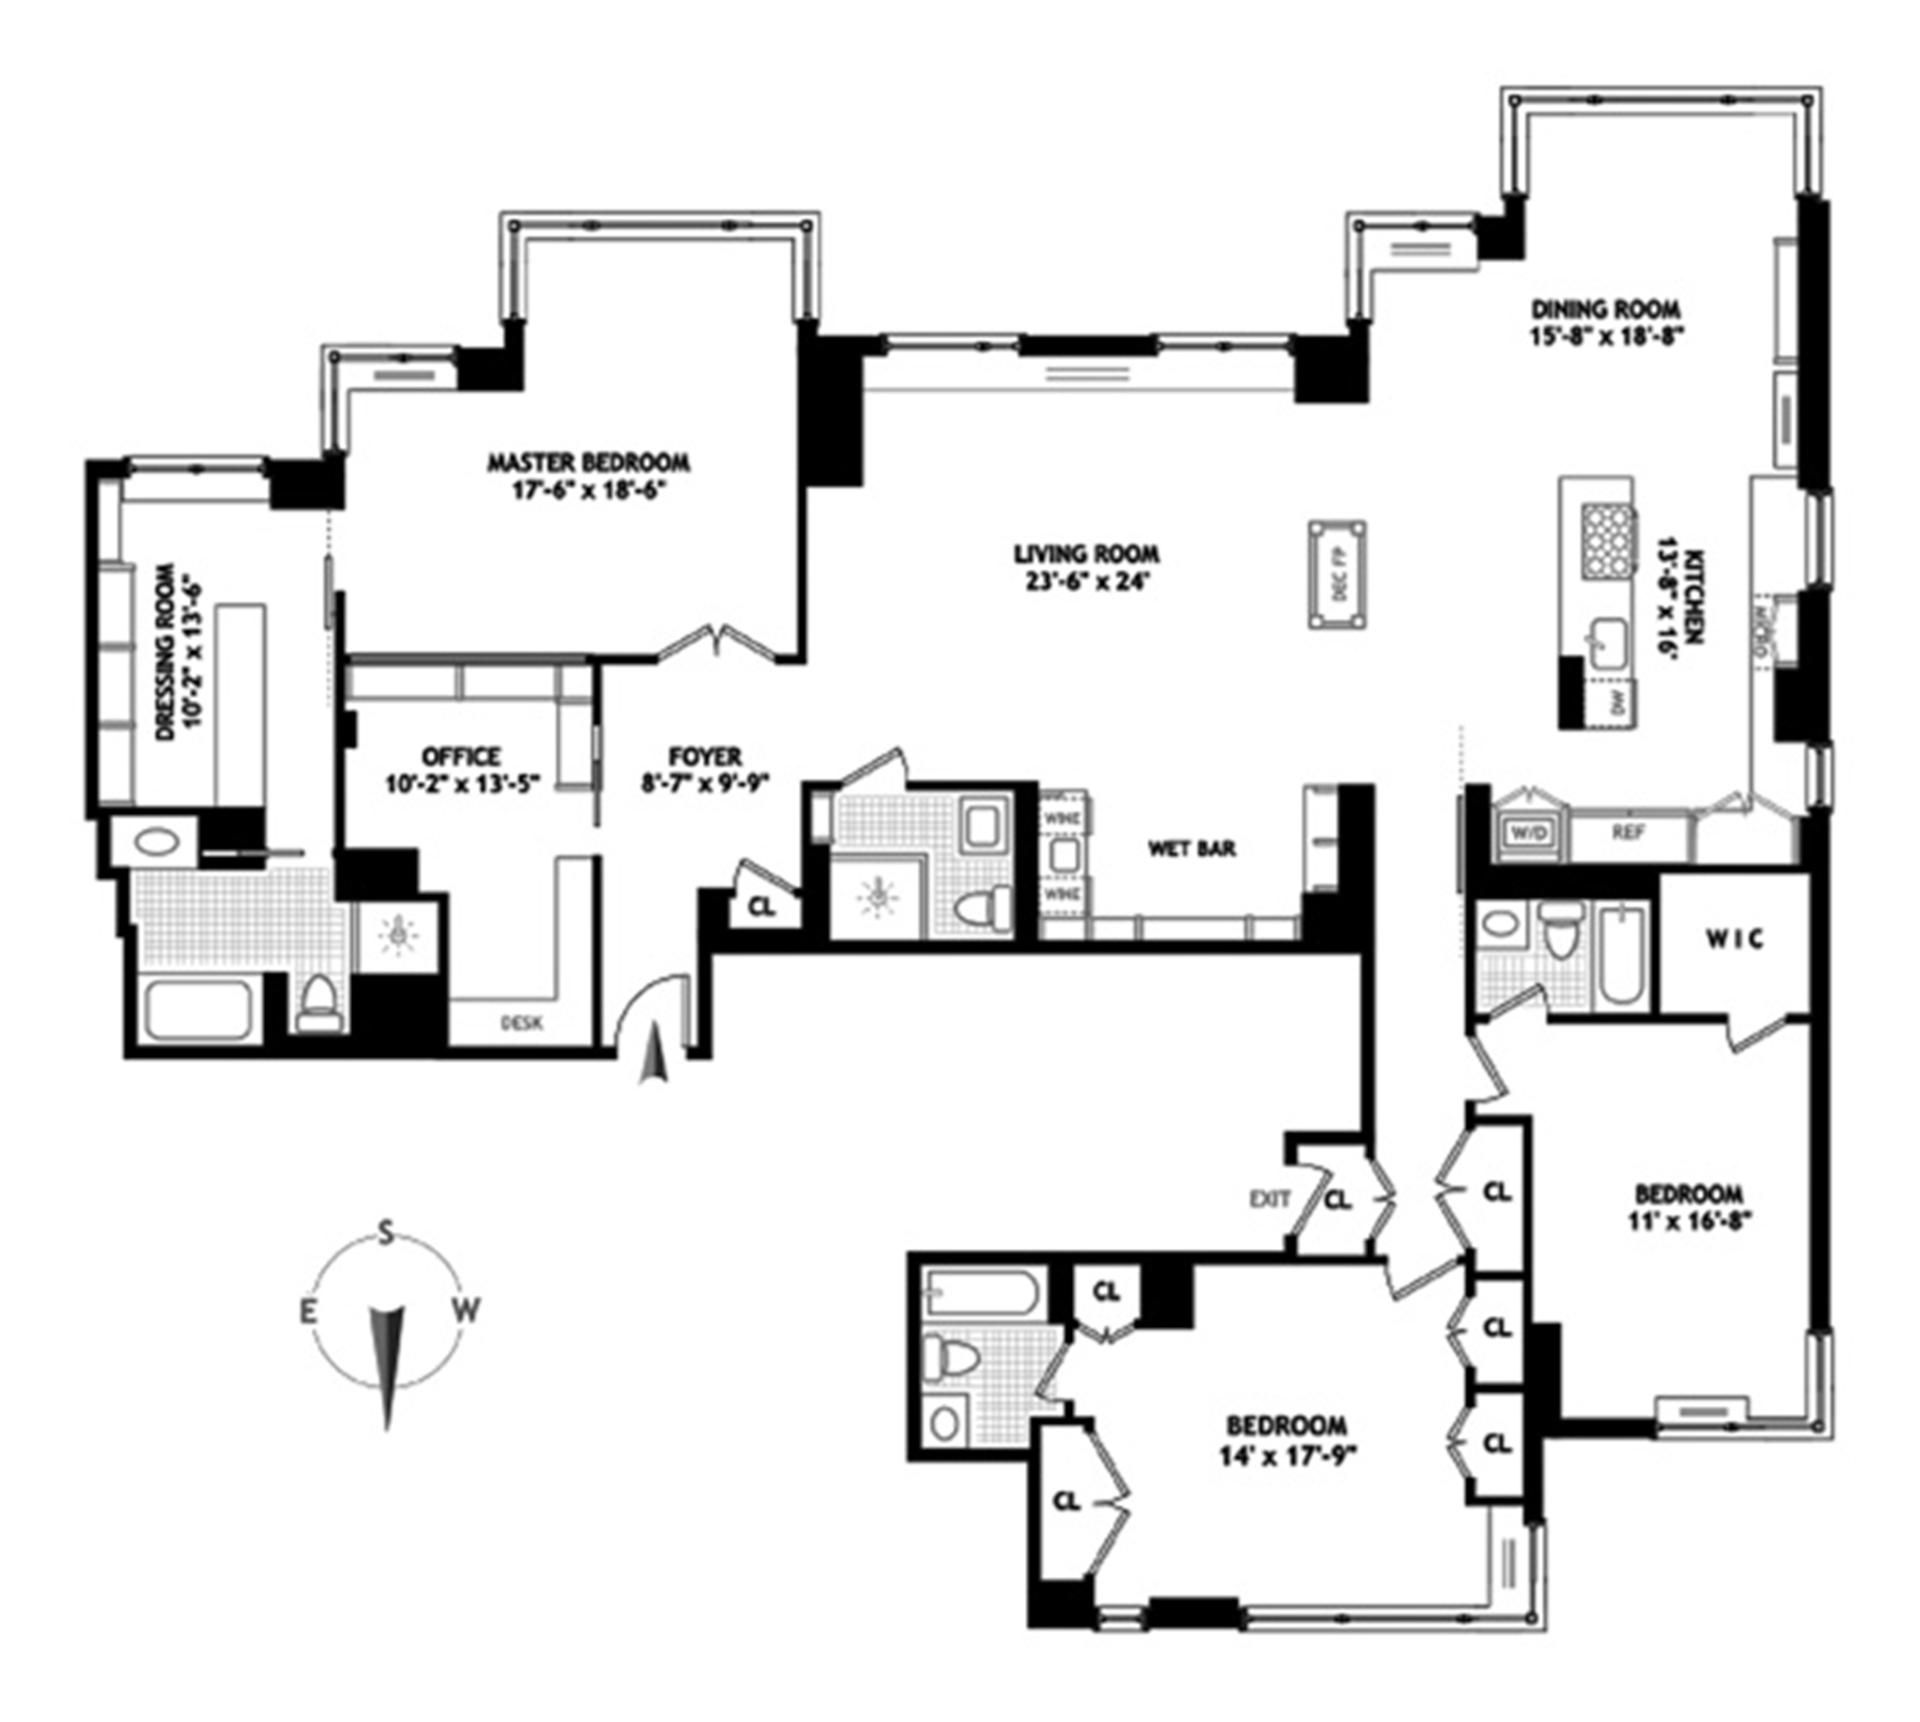 Floor plan of THE BELAIRE, 524 East 72nd St, 30C - Upper East Side, New York